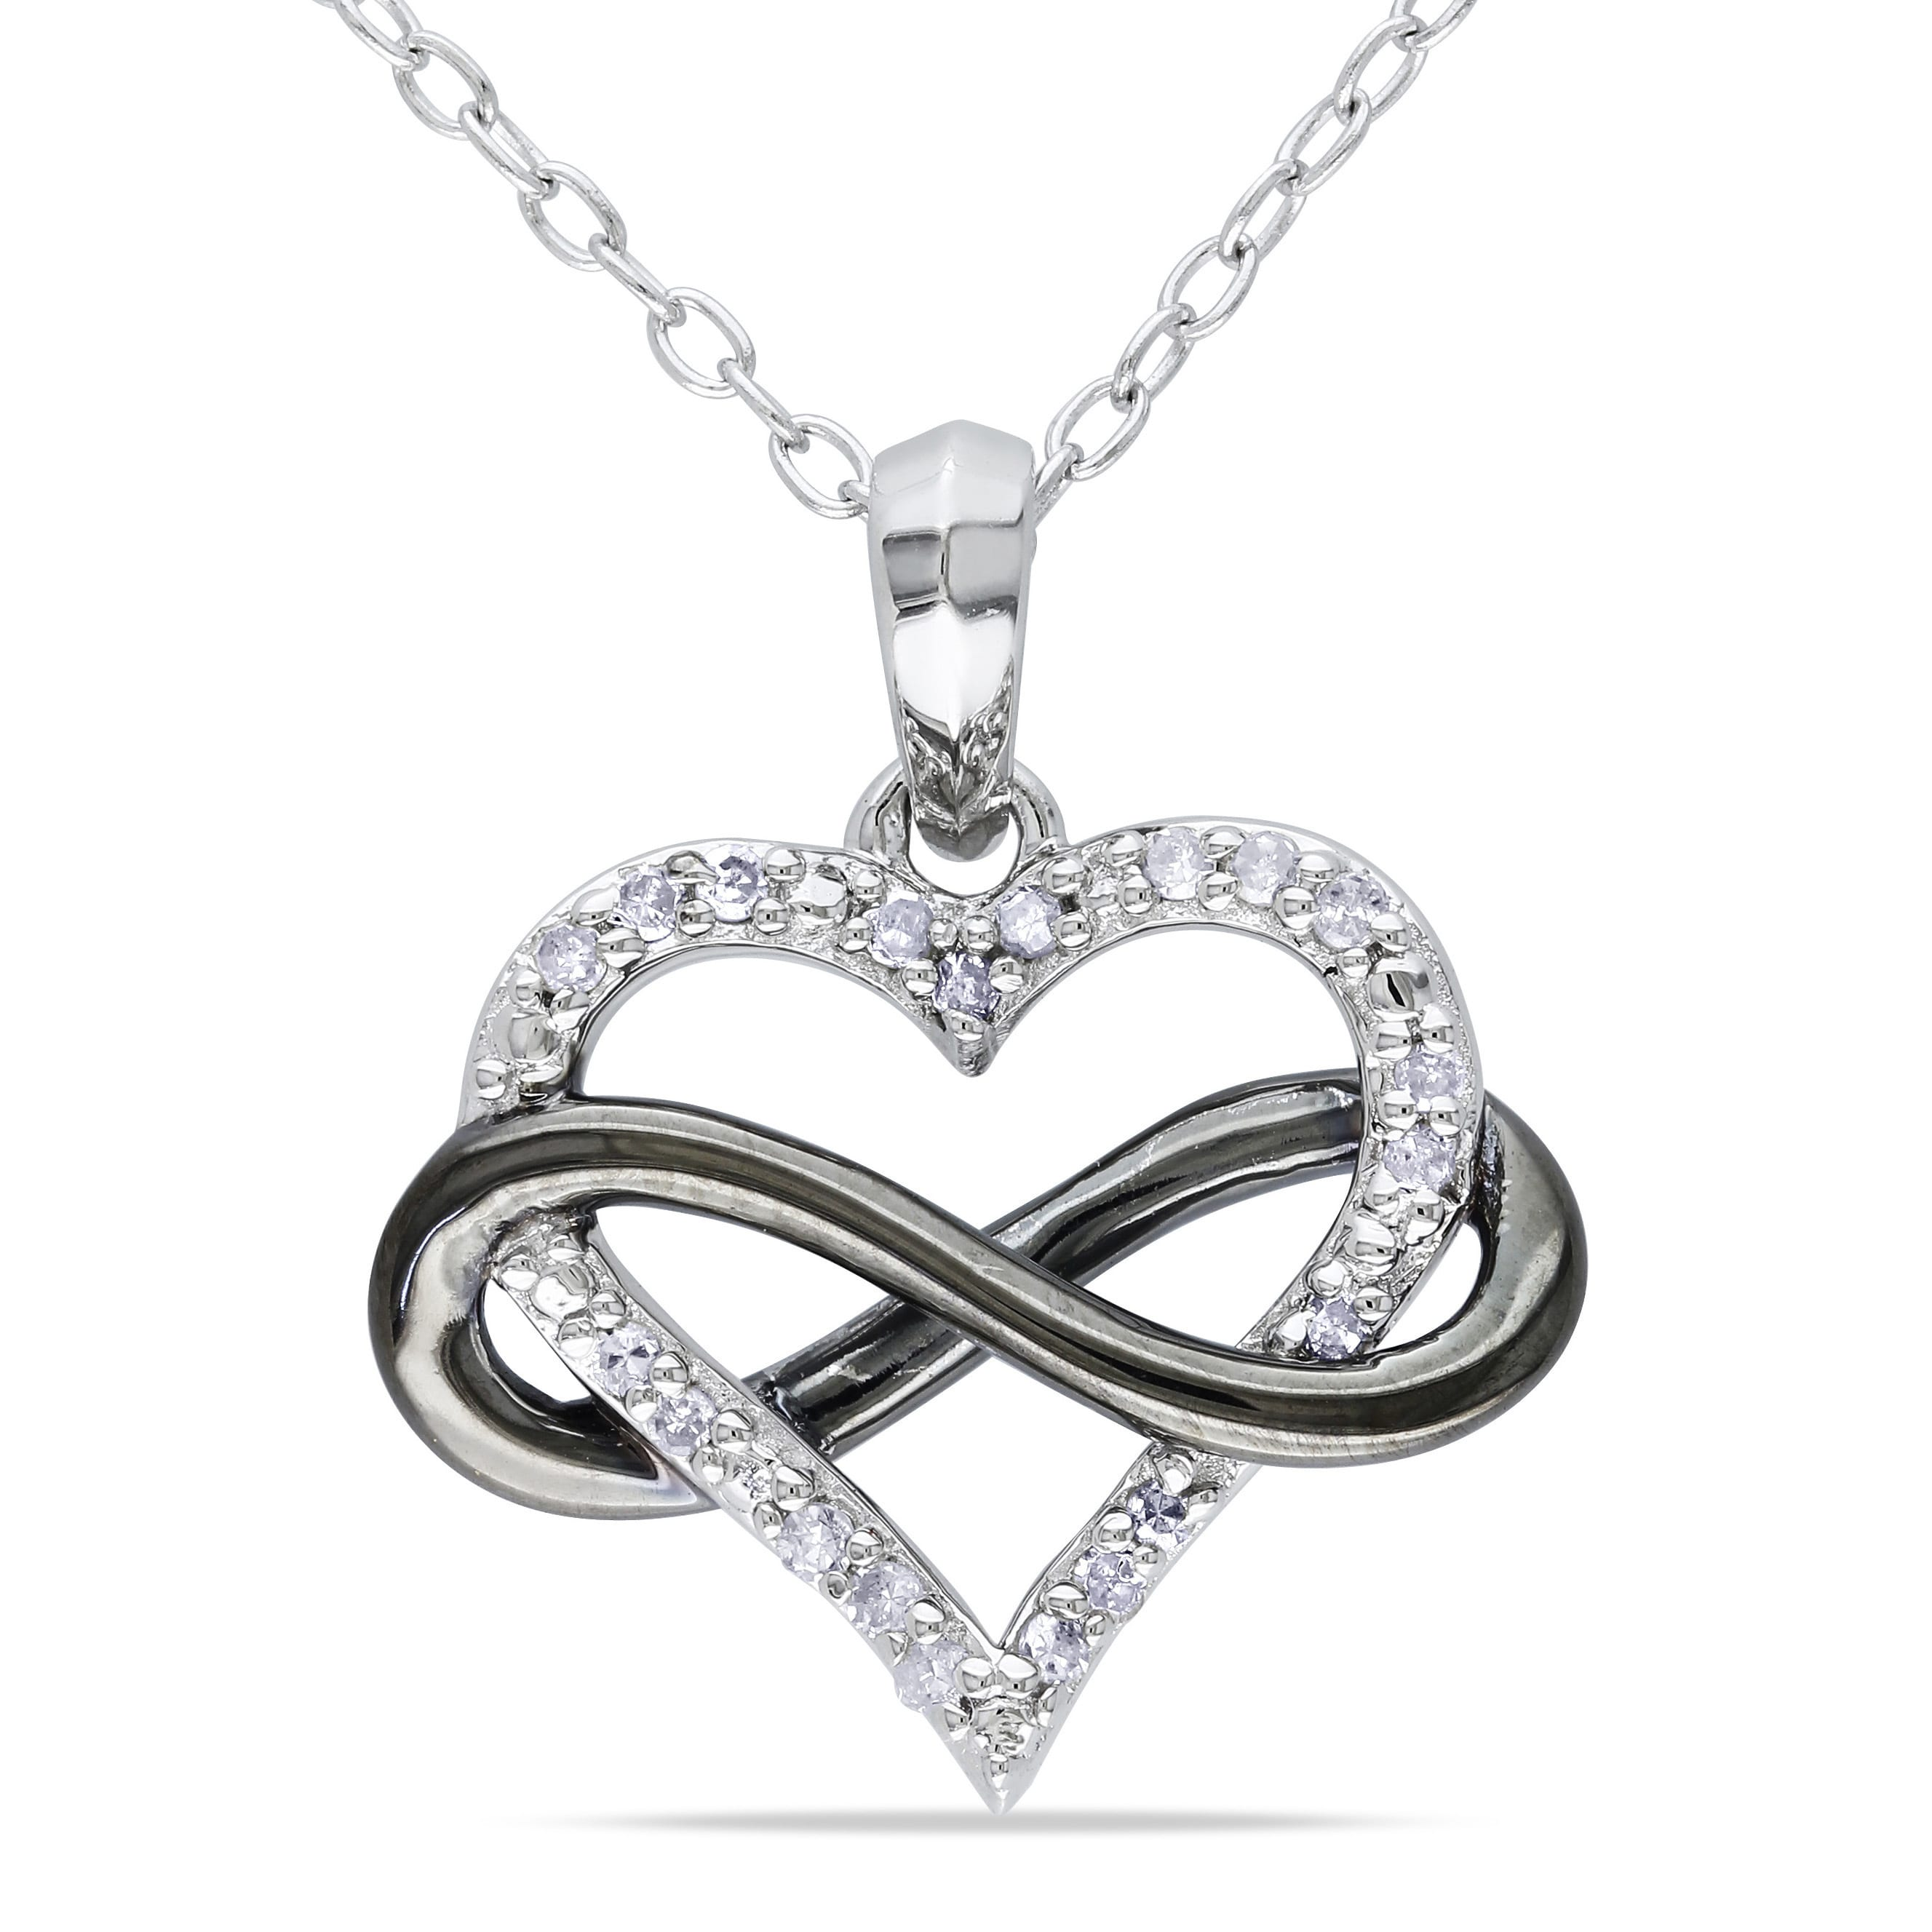 ic xo pagespeed ruby necklace sterling image ben product jewellers diamond moss qitok of silver heart